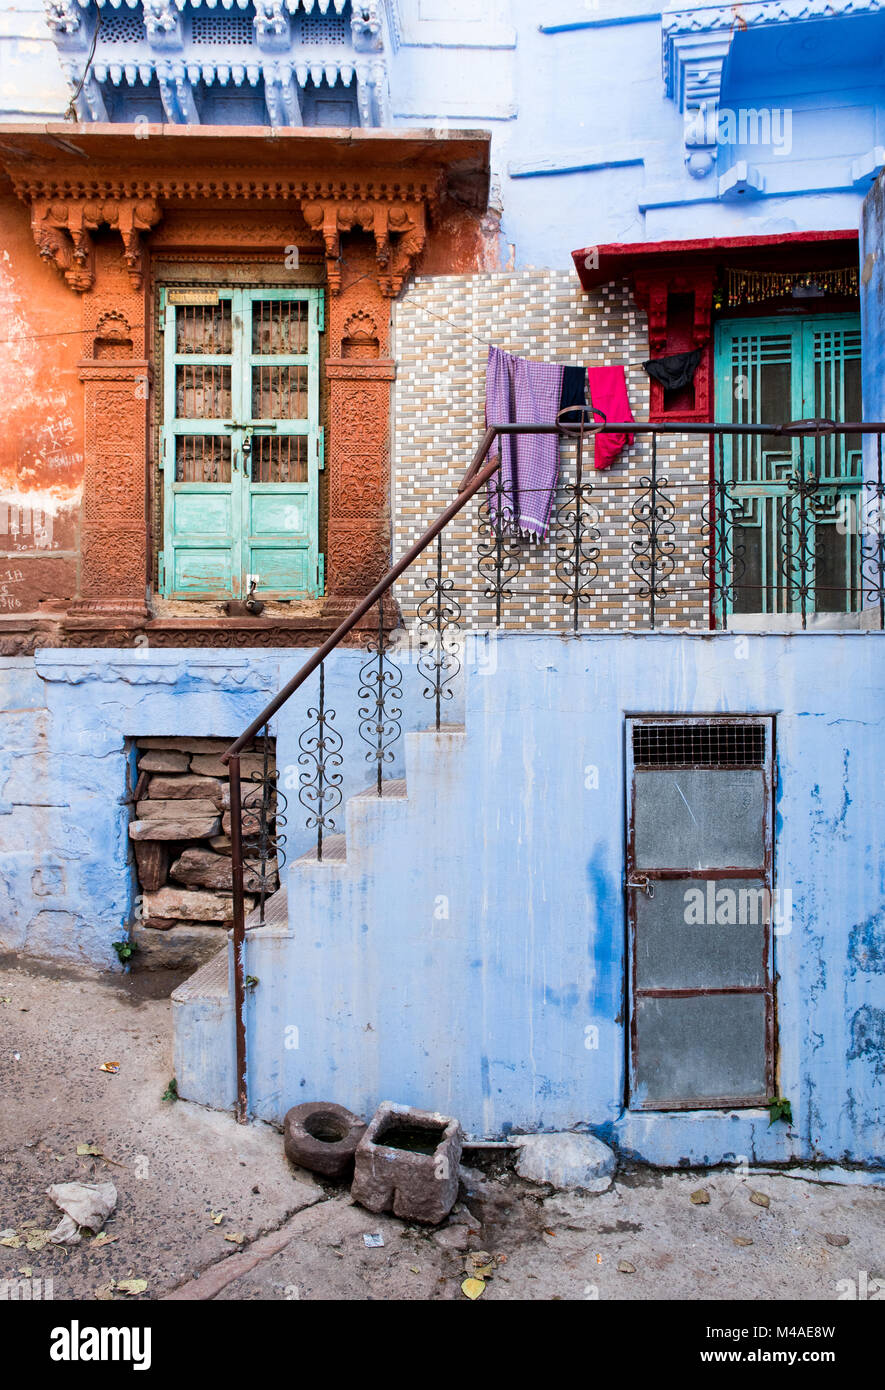 Exterior of a traditional colourful  Indian house at the blue city of Jodhpur at Rajasthan, India, Asia Stock Photo